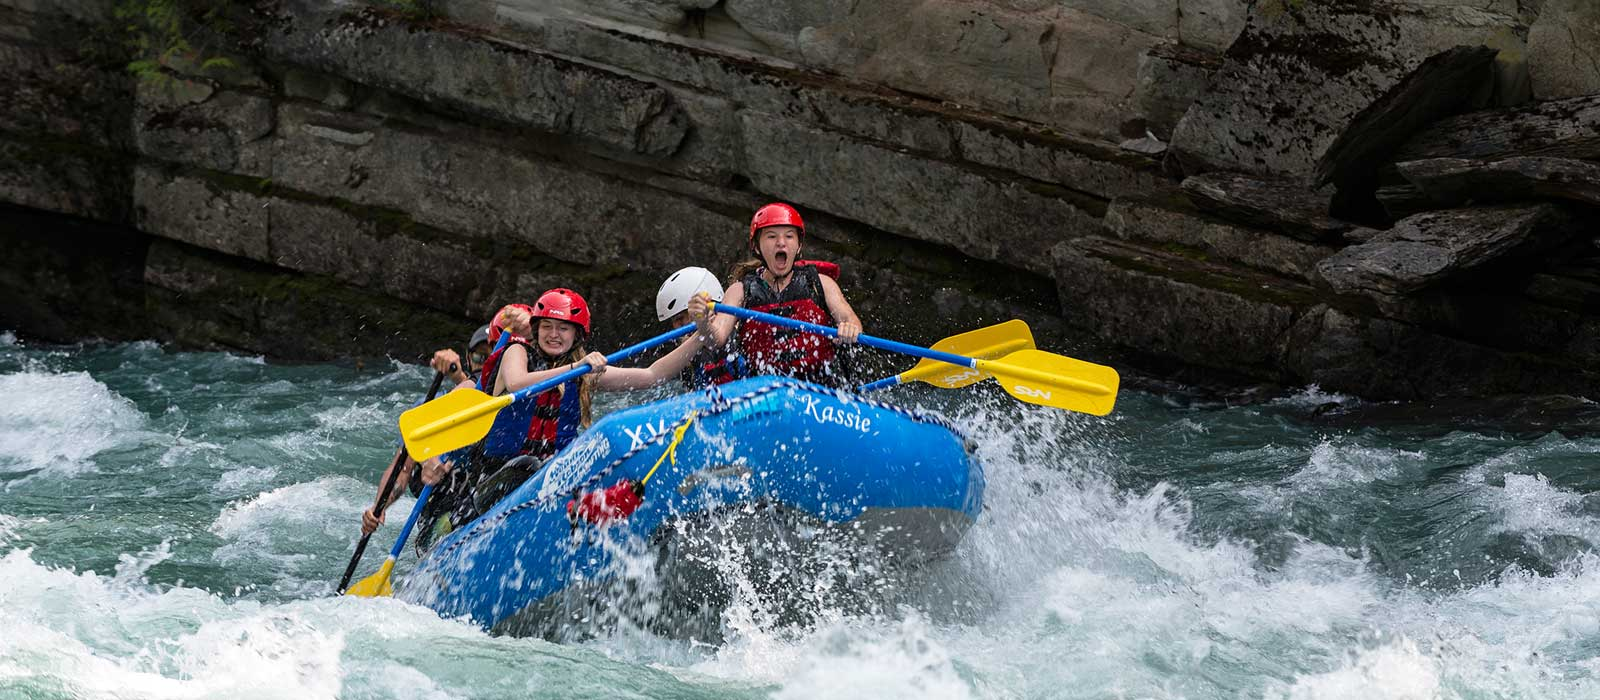 Whitewater rafters bouncing through the rapids